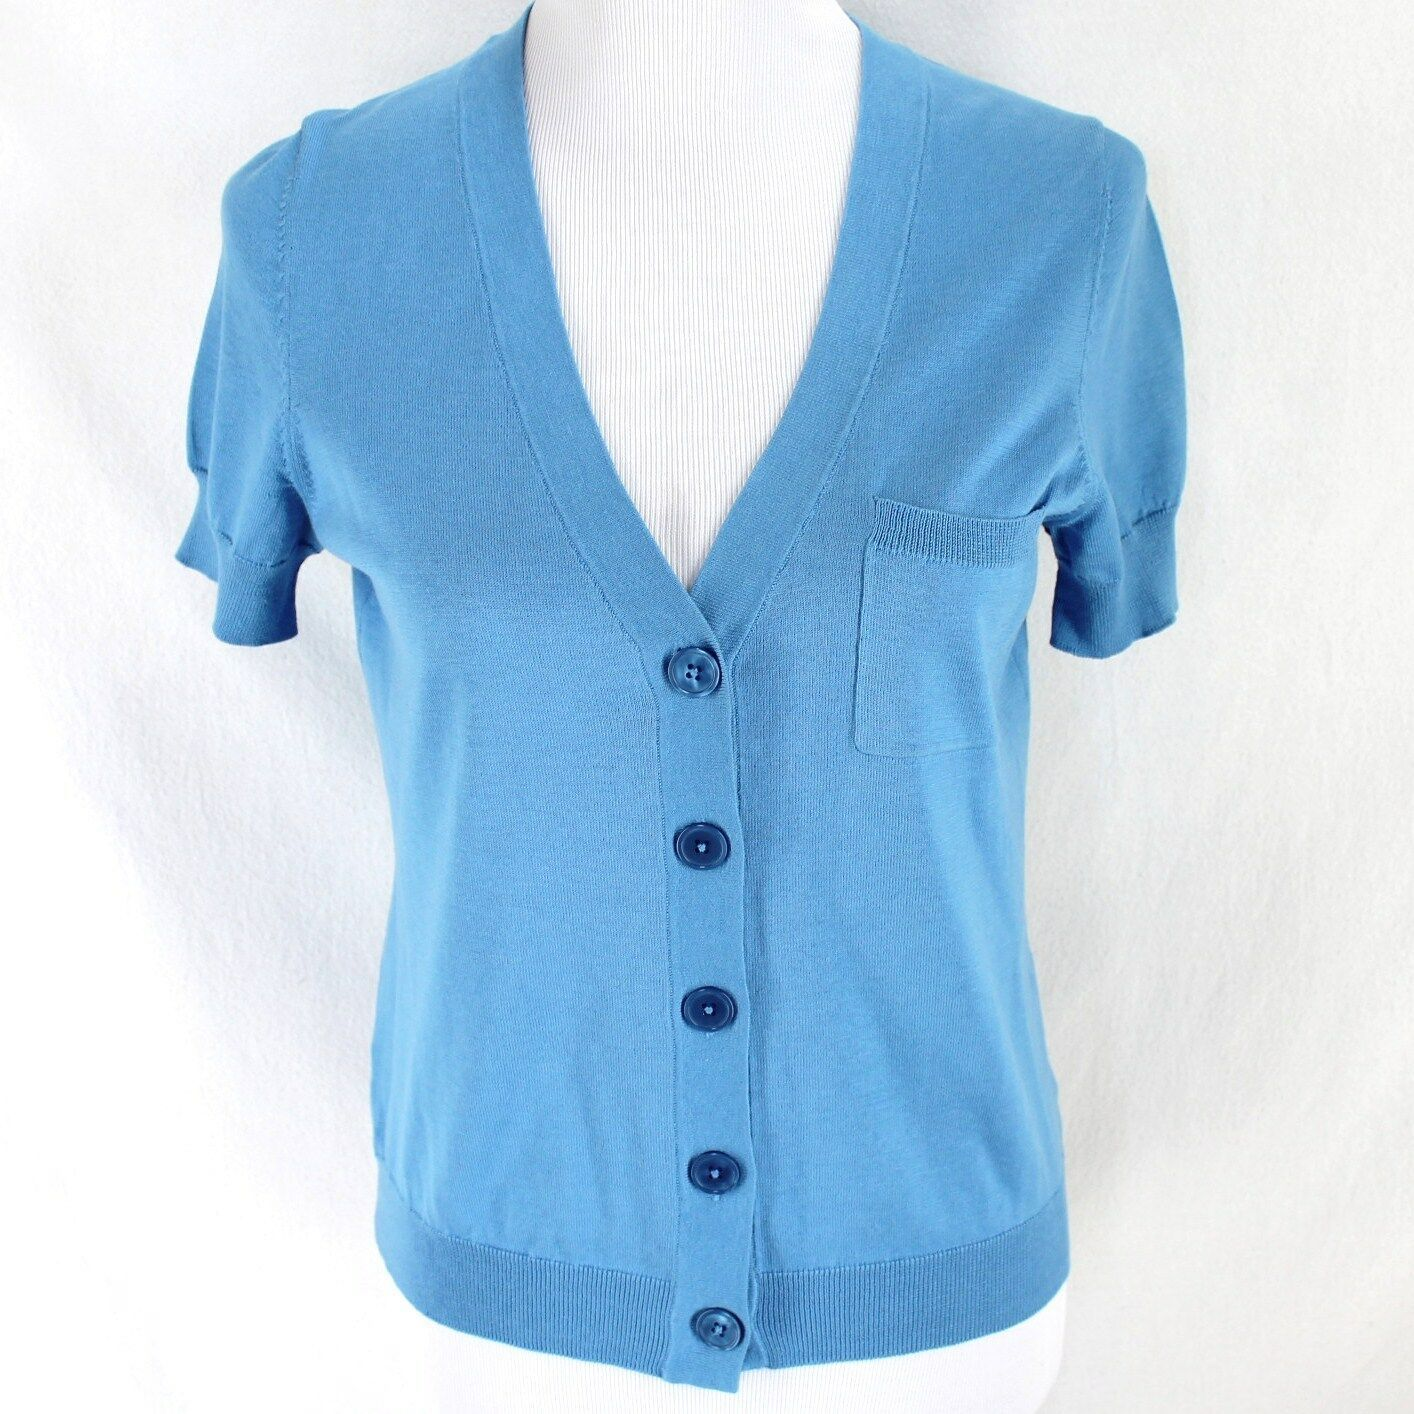 Primary image for Talbots Cardigan Sweater Sz MP Blue Short Sleeve Lightweight Silk Blend